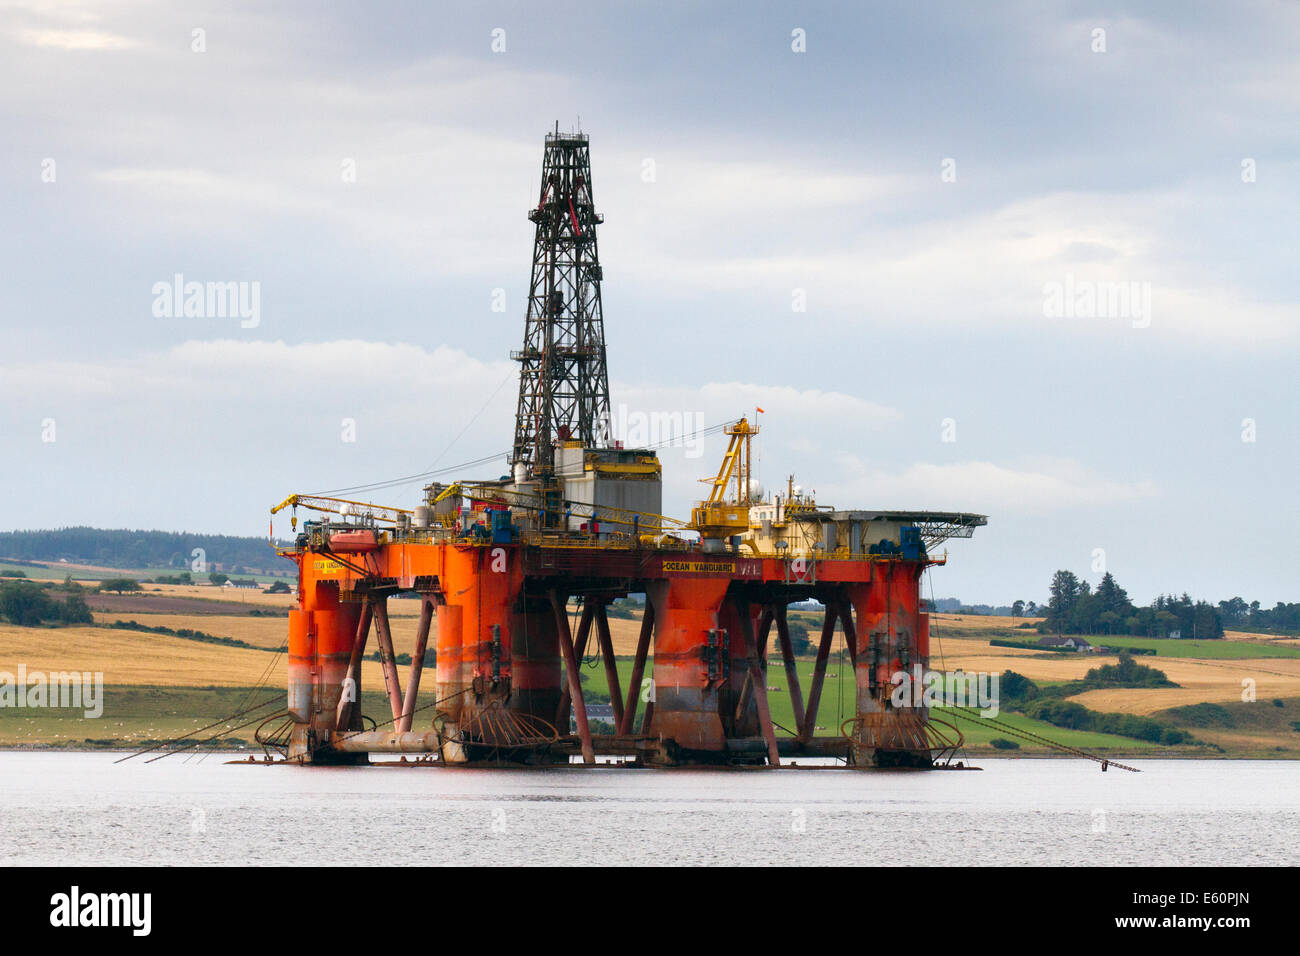 Invergordon, Scotland, UK. The Ocean Vanguard Semisub Oil rig and service vessels have lined up in the Cromarty - Stock Image